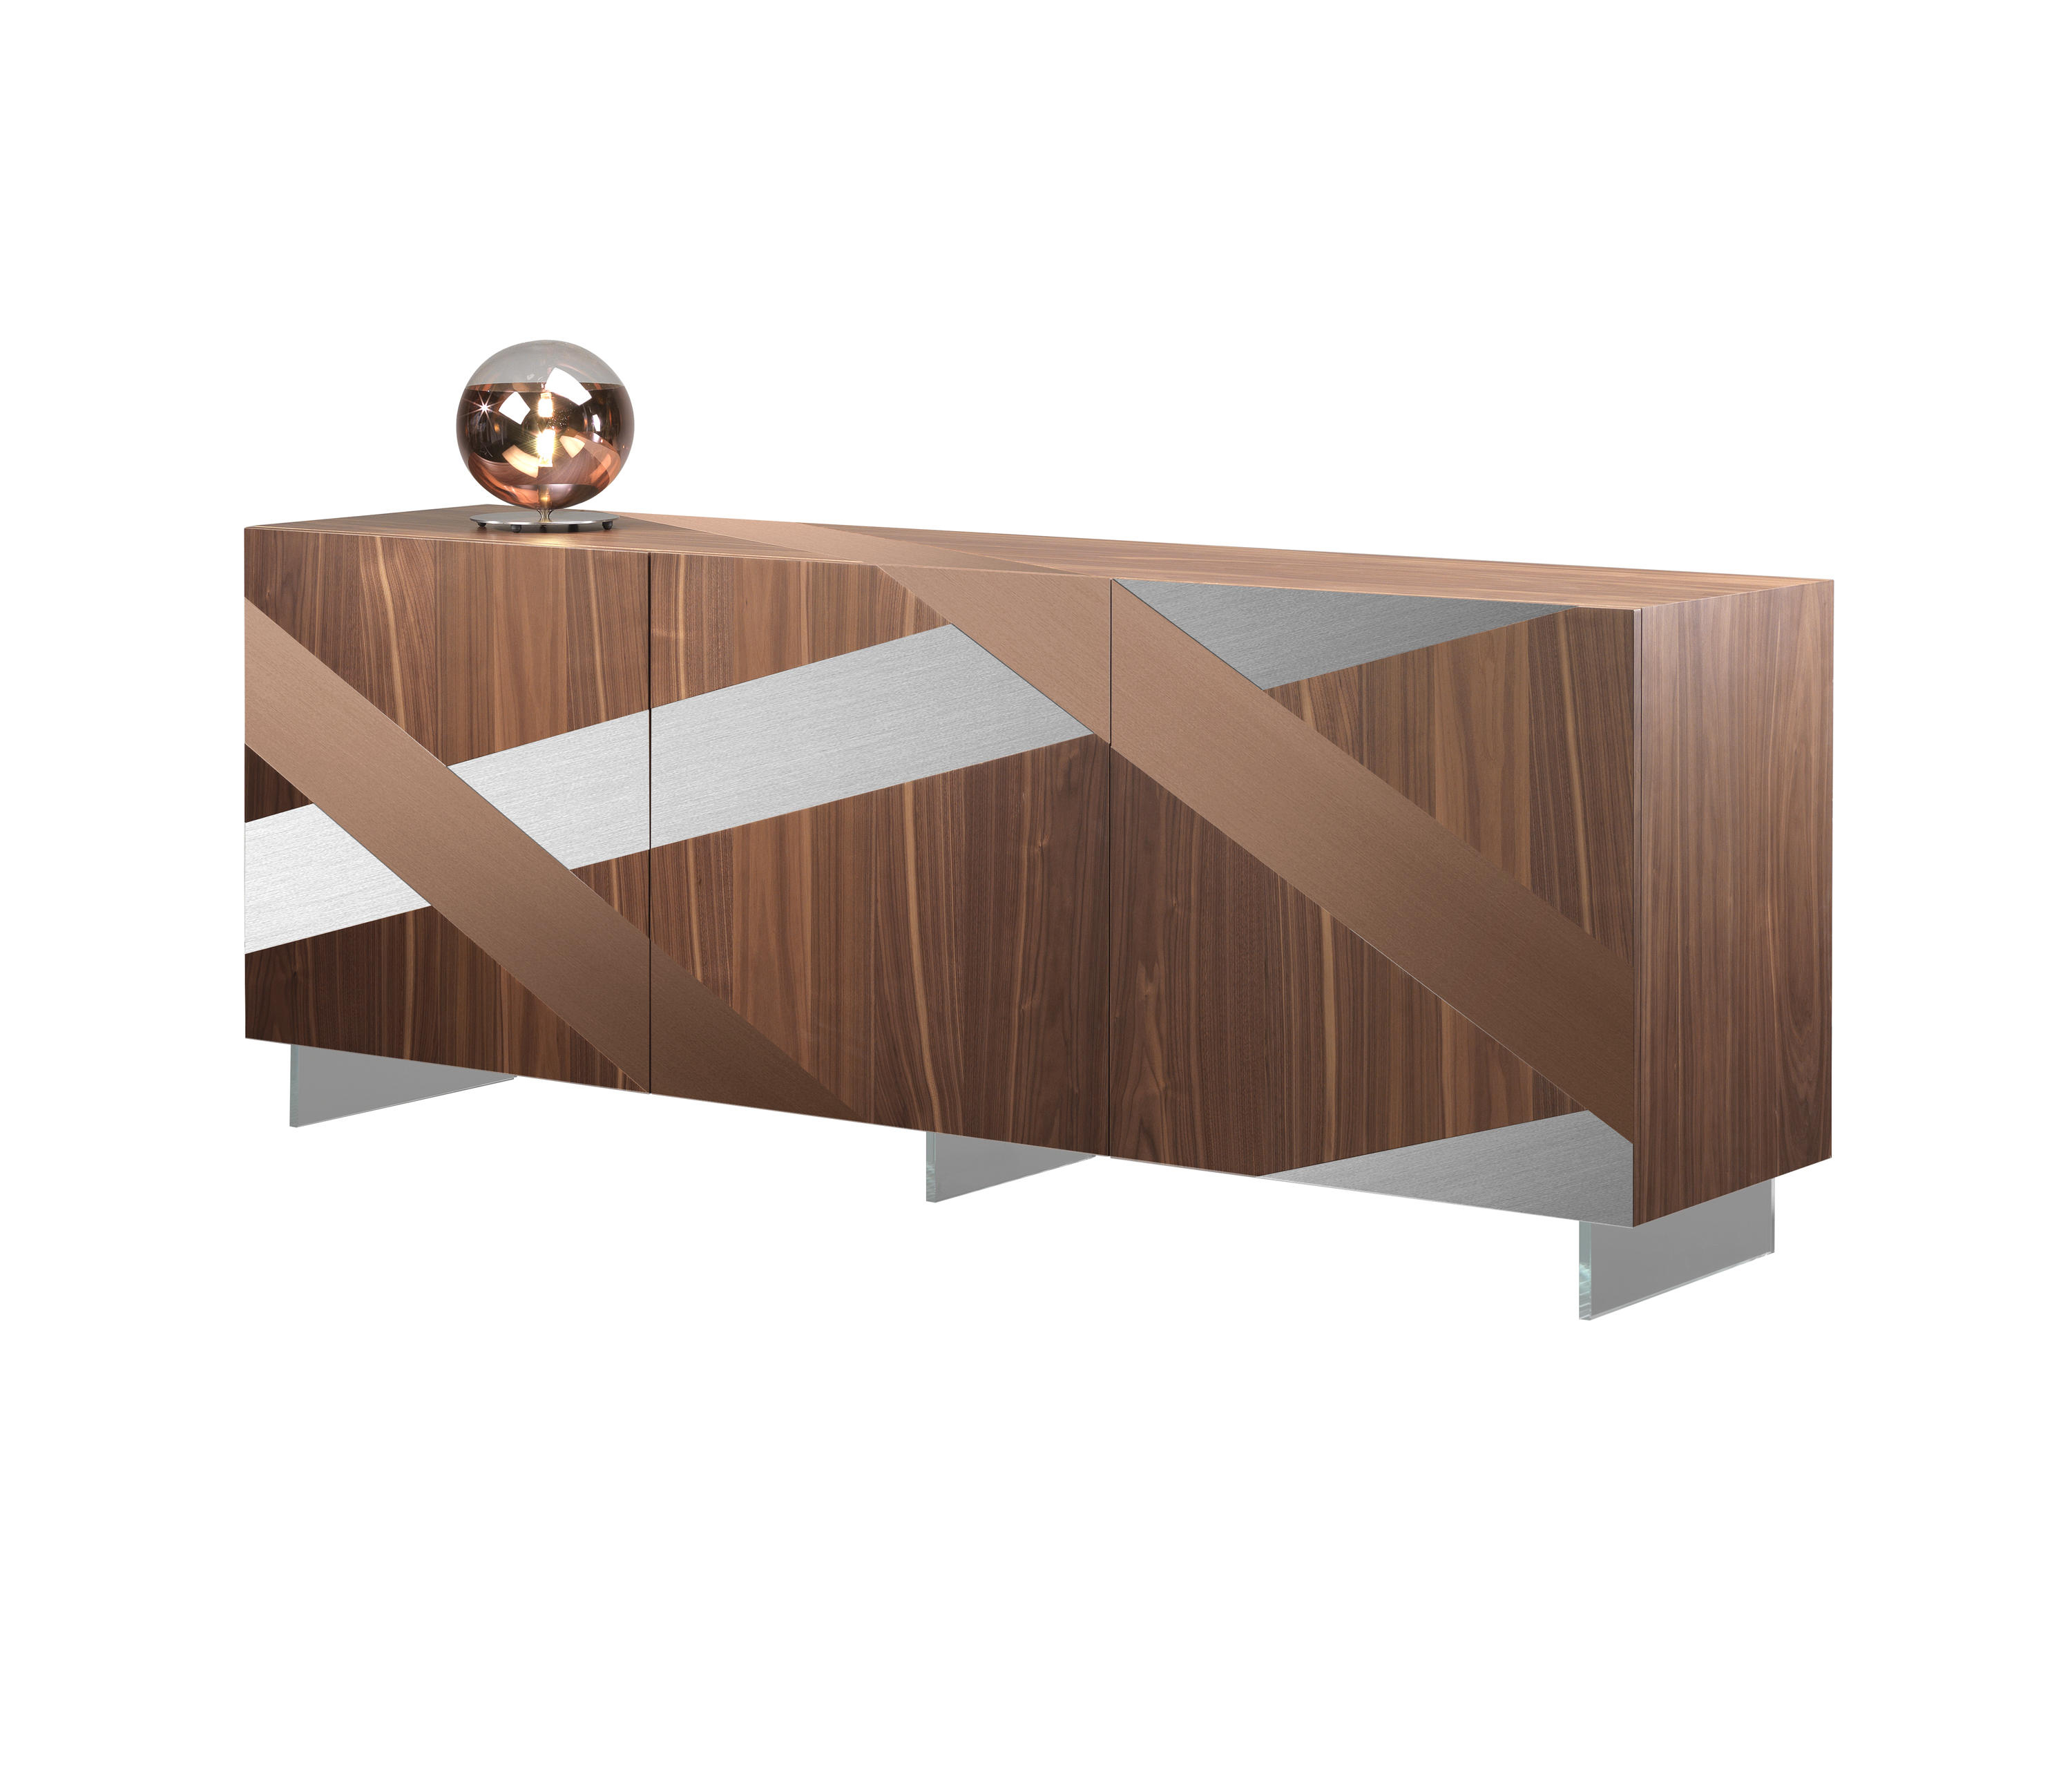 Ramo Buffet – Sideboards / Kommoden Von Reflex | Architonic In Copper Leaf Wood Credenzas (View 18 of 20)